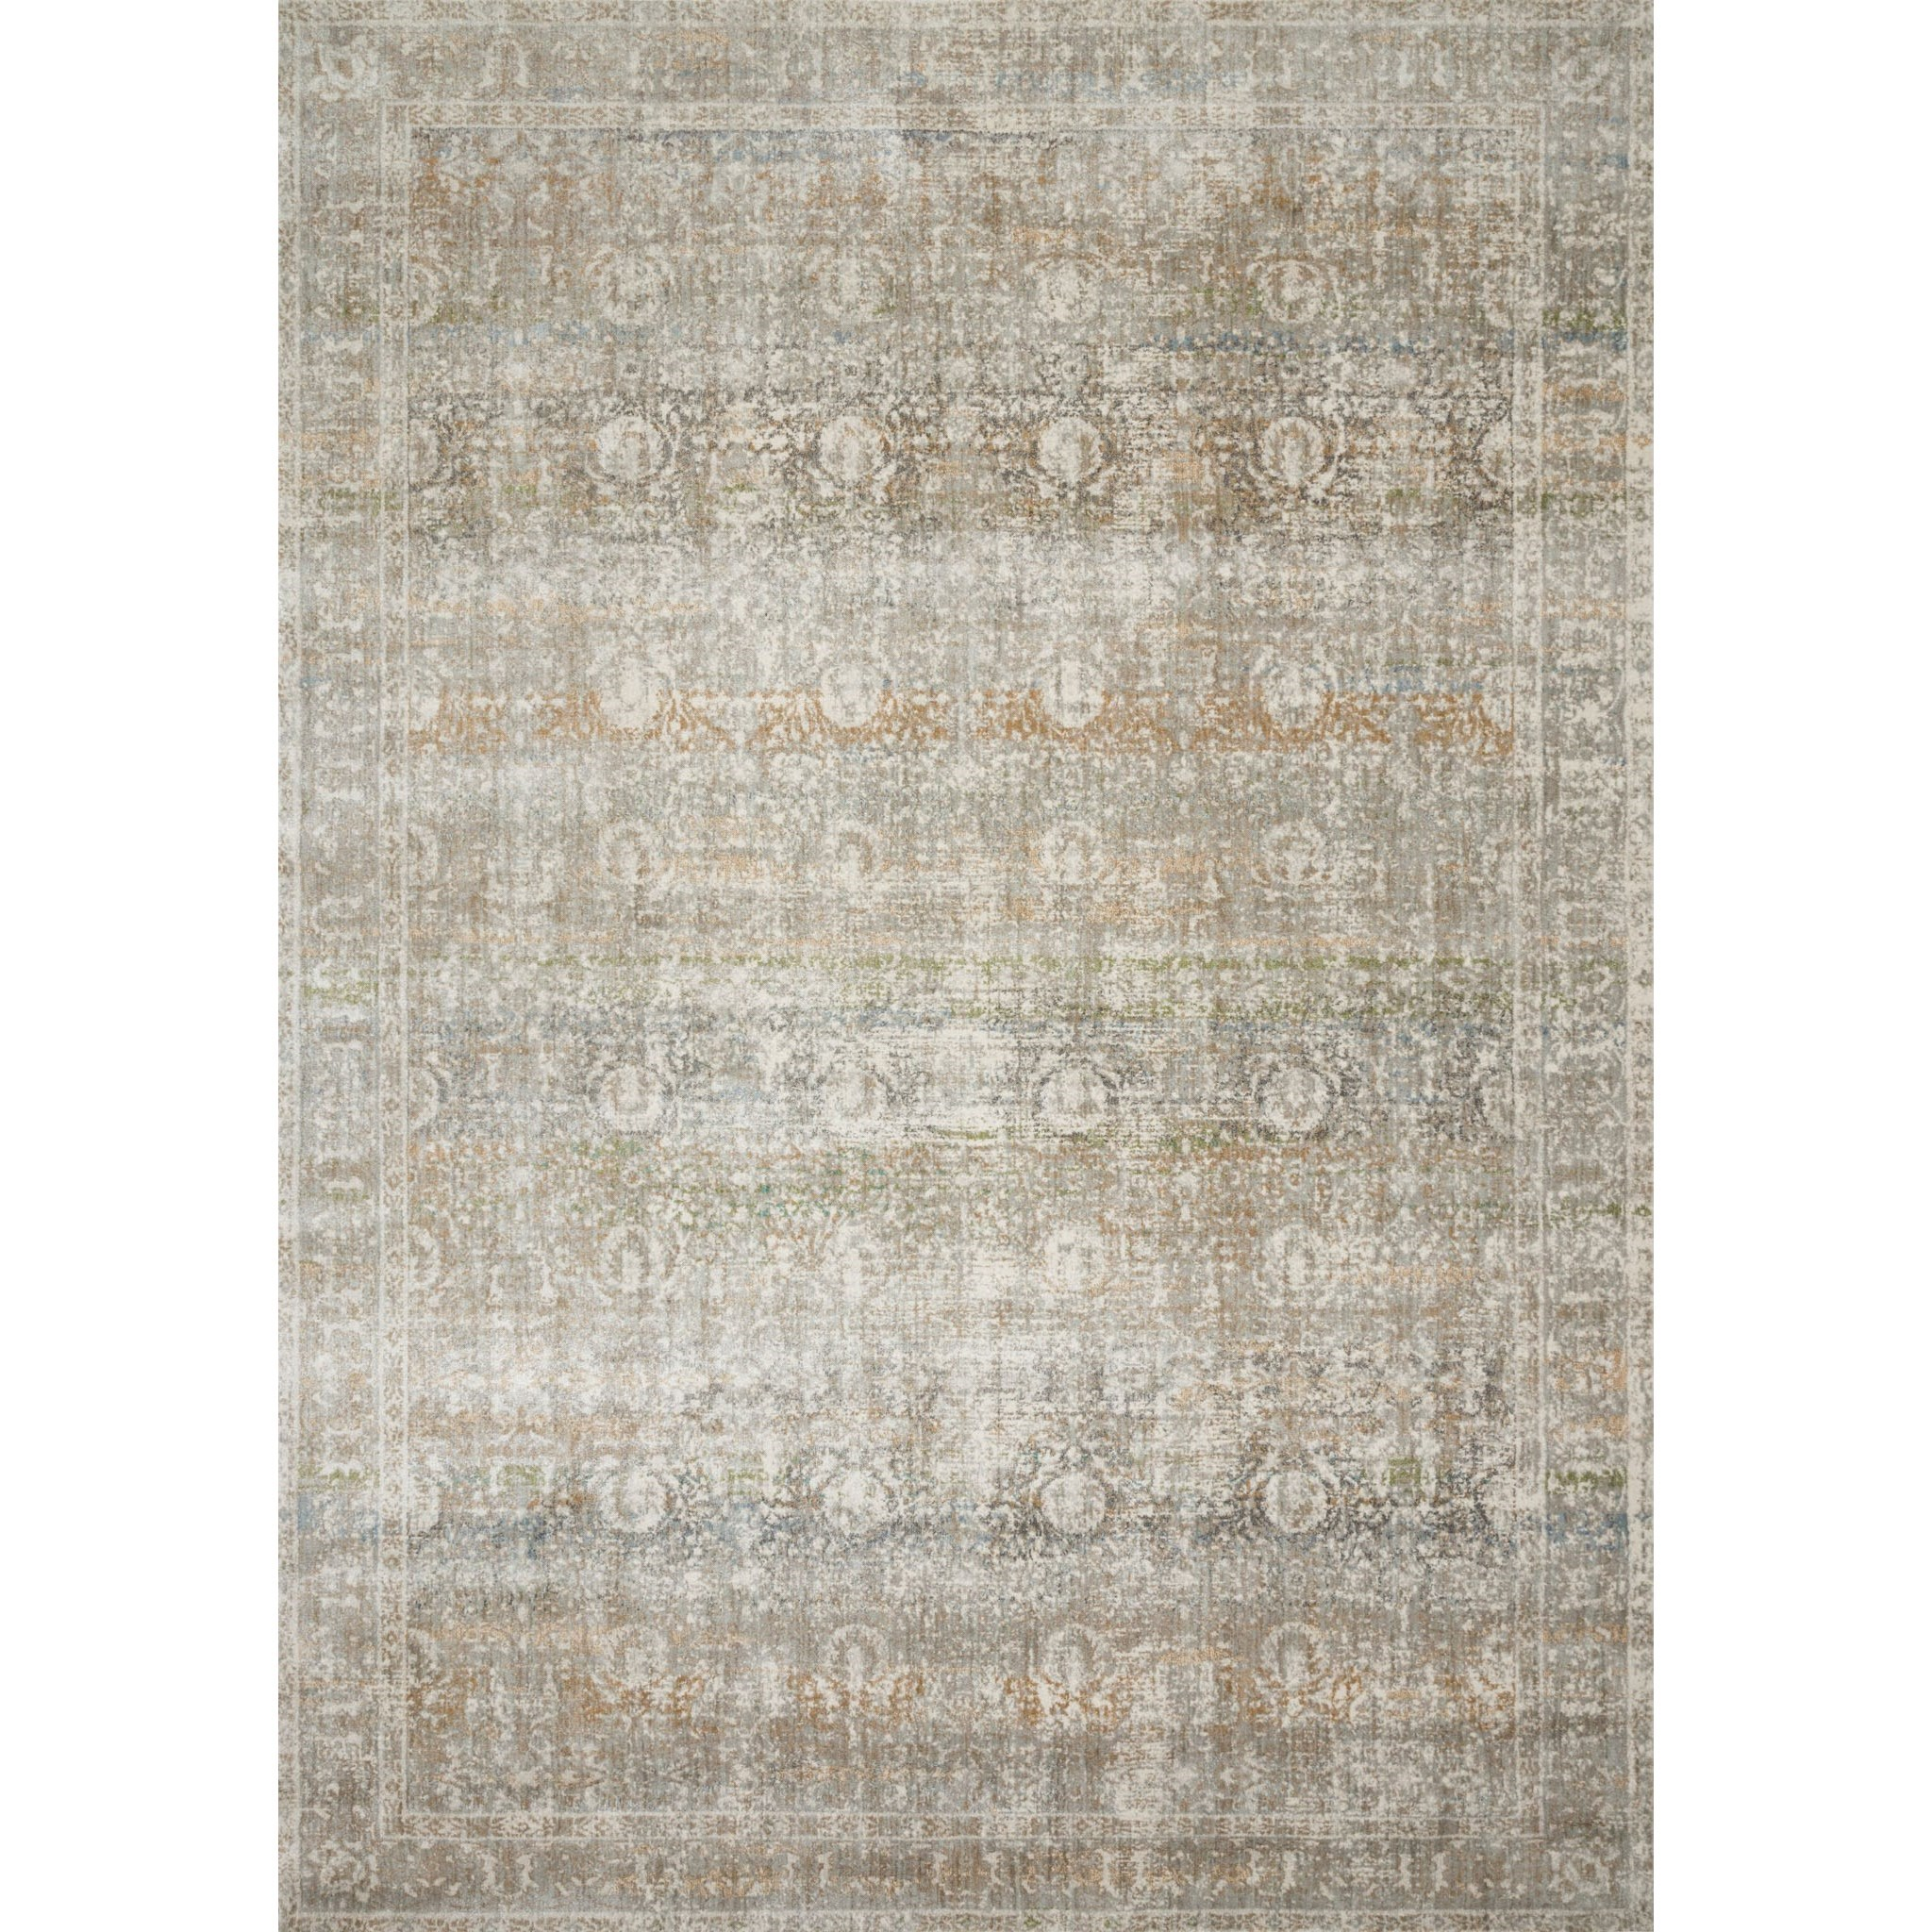 "Anastasia 2'-7"" x 4' Rug by Loloi Rugs at Virginia Furniture Market"